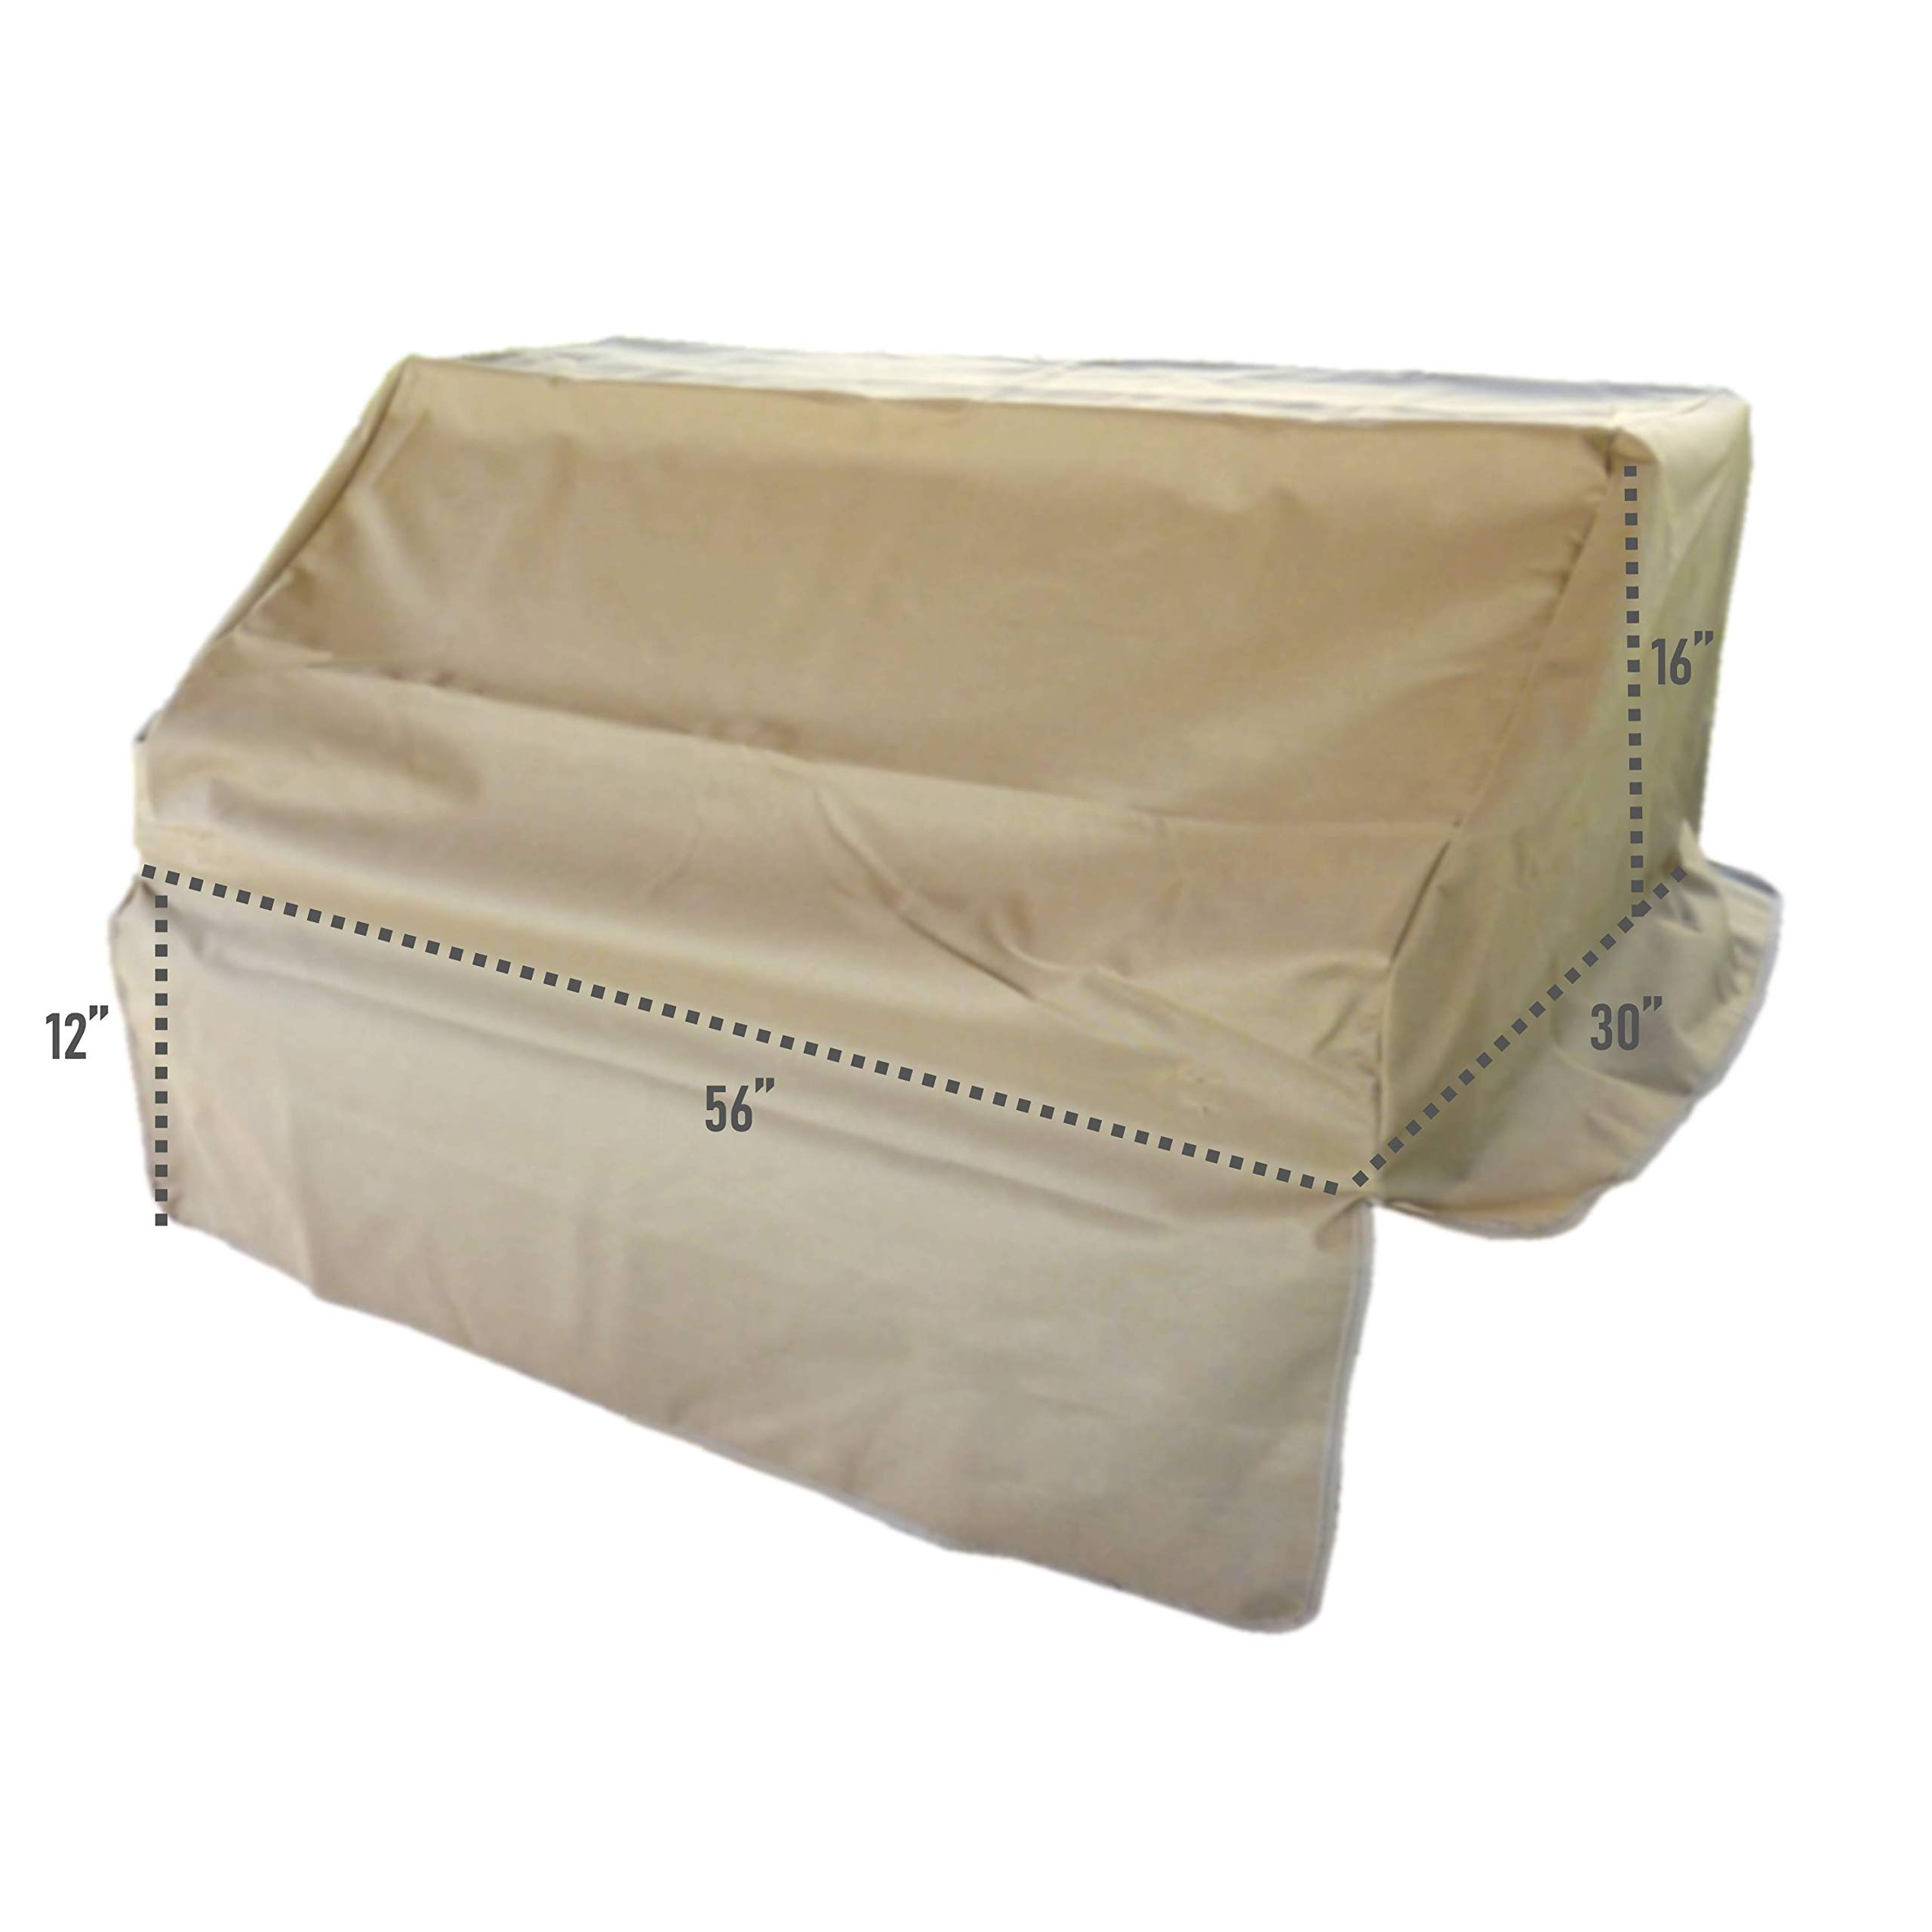 """Formosa Covers BBQ Built-in Grill Cover up to 56"""""""